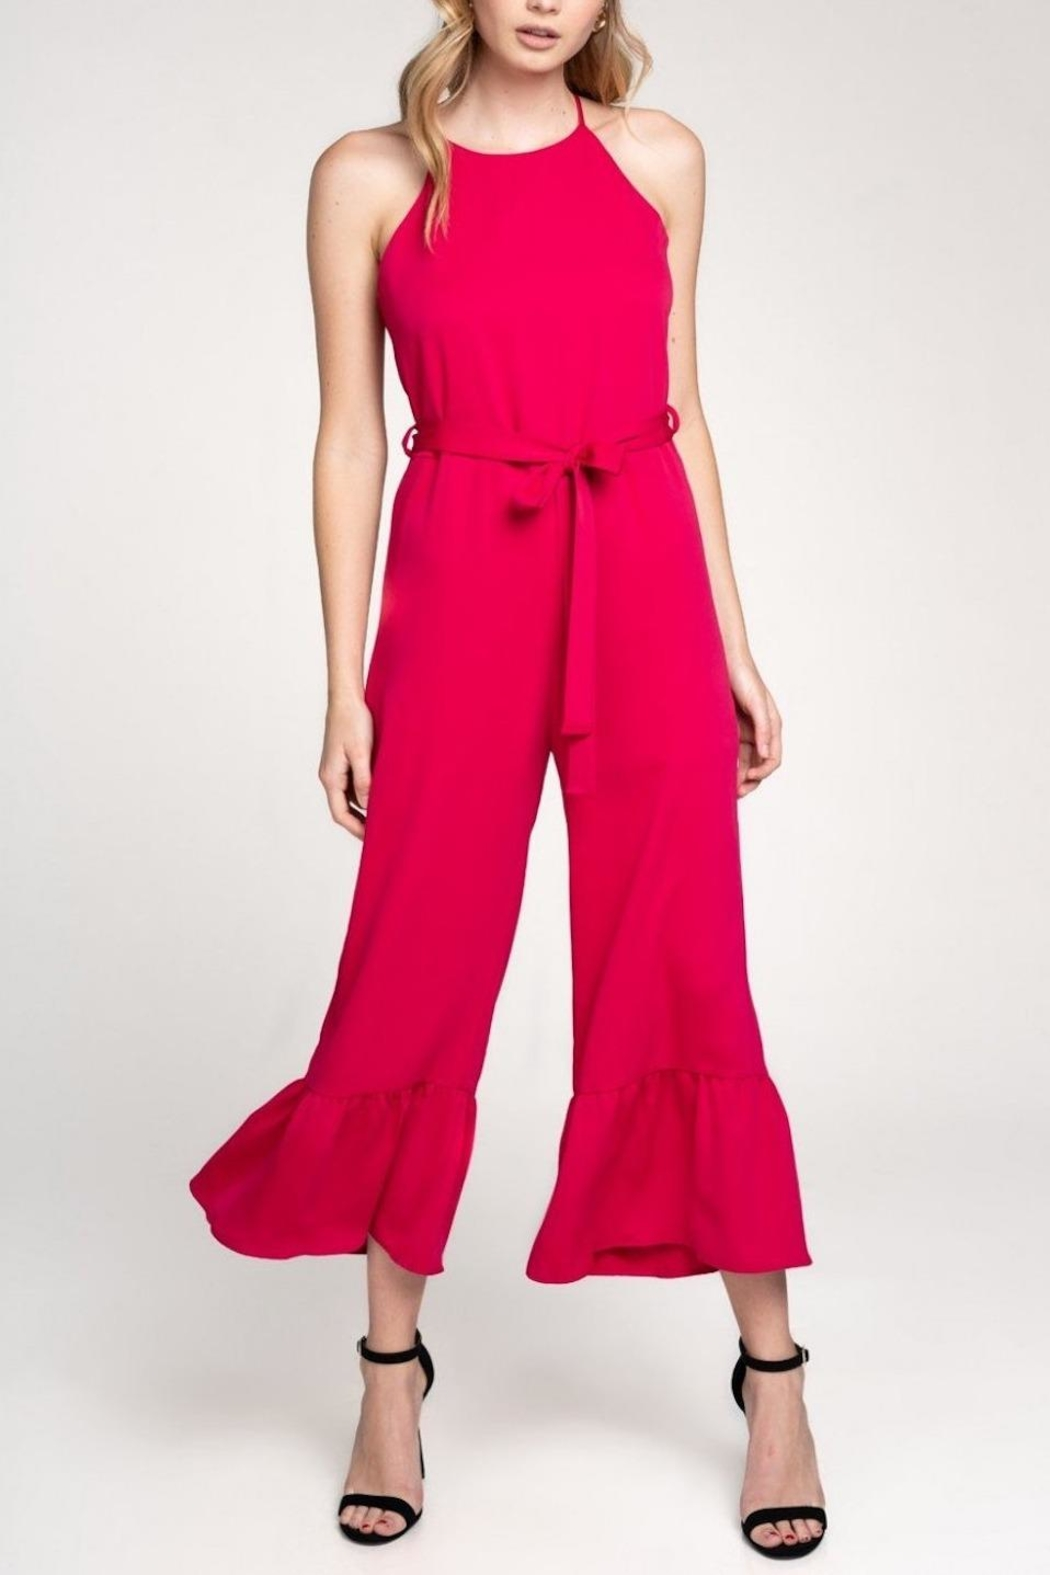 Everly Flare-Out Leg Jumpsuit - Main Image